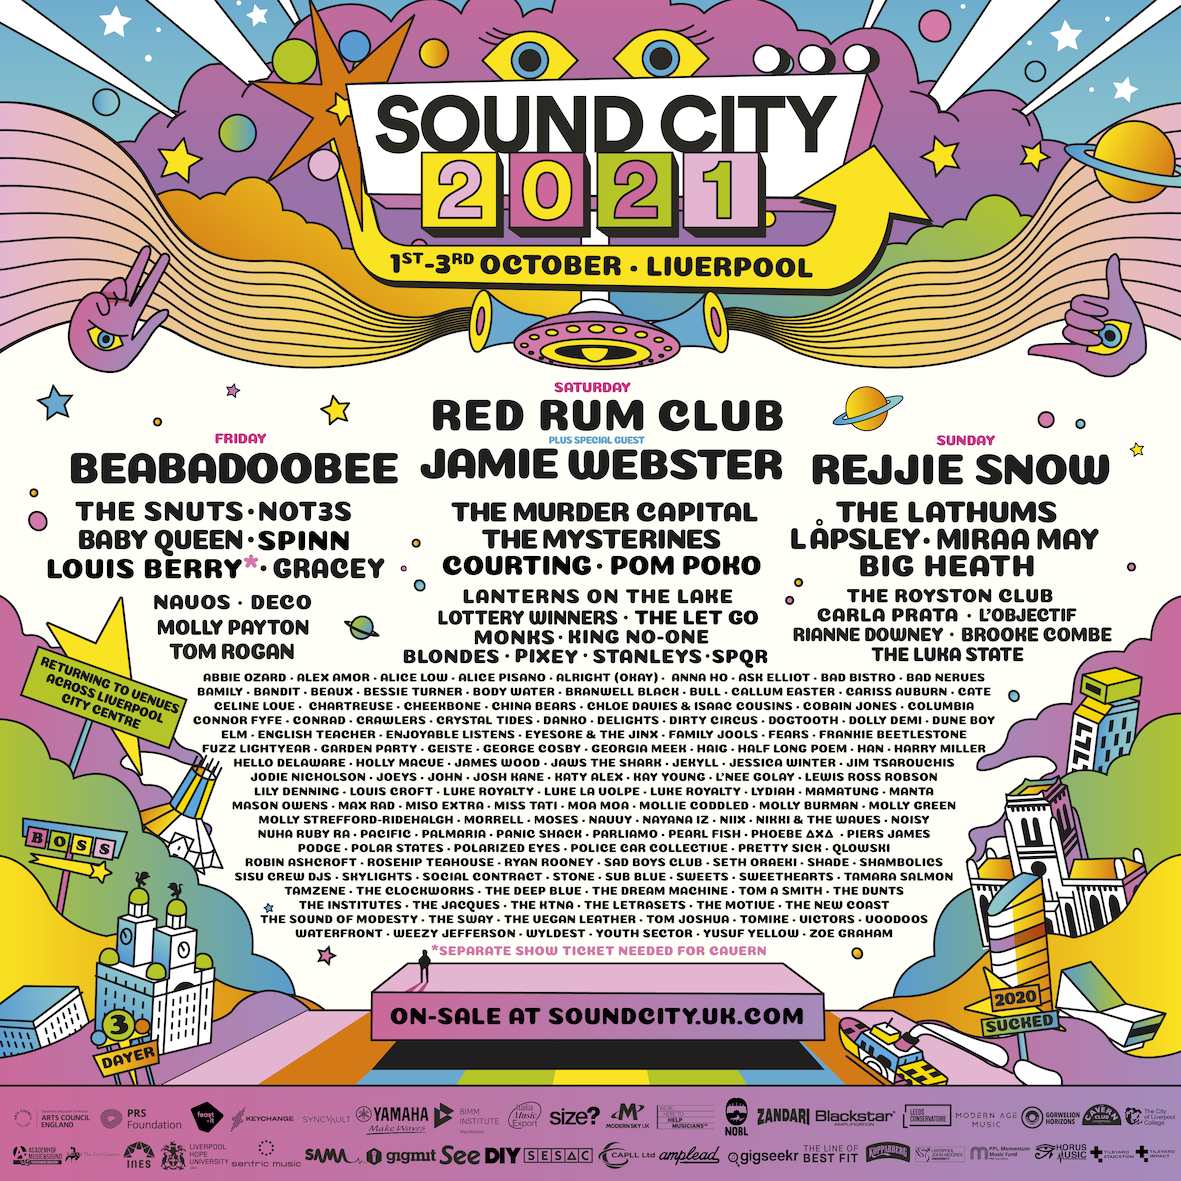 Final 20 artists revealed for Sound City 2021!